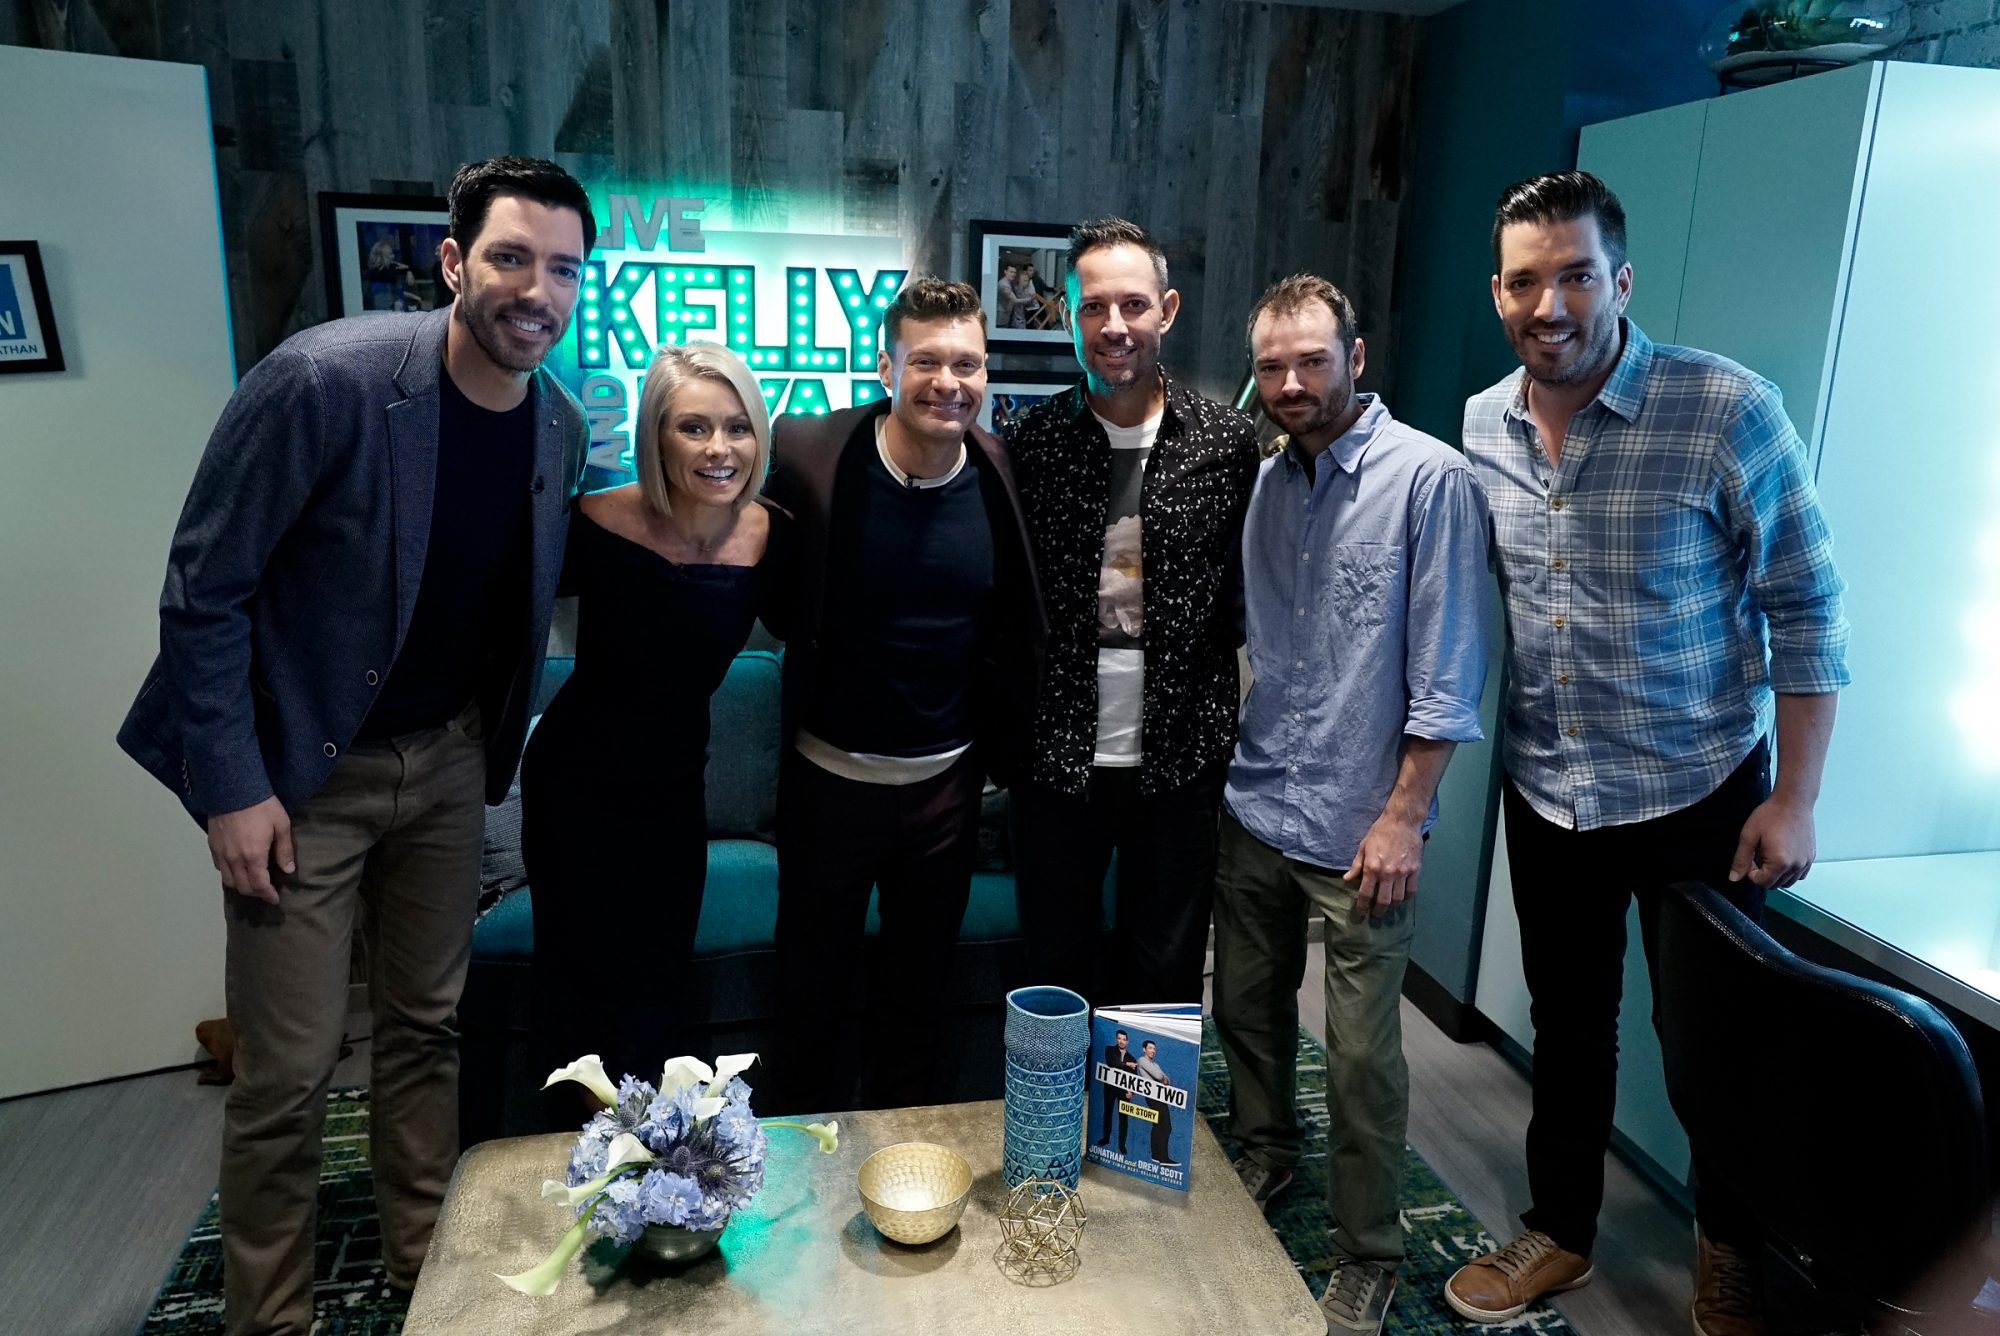 Live wth Kelly and Ryan